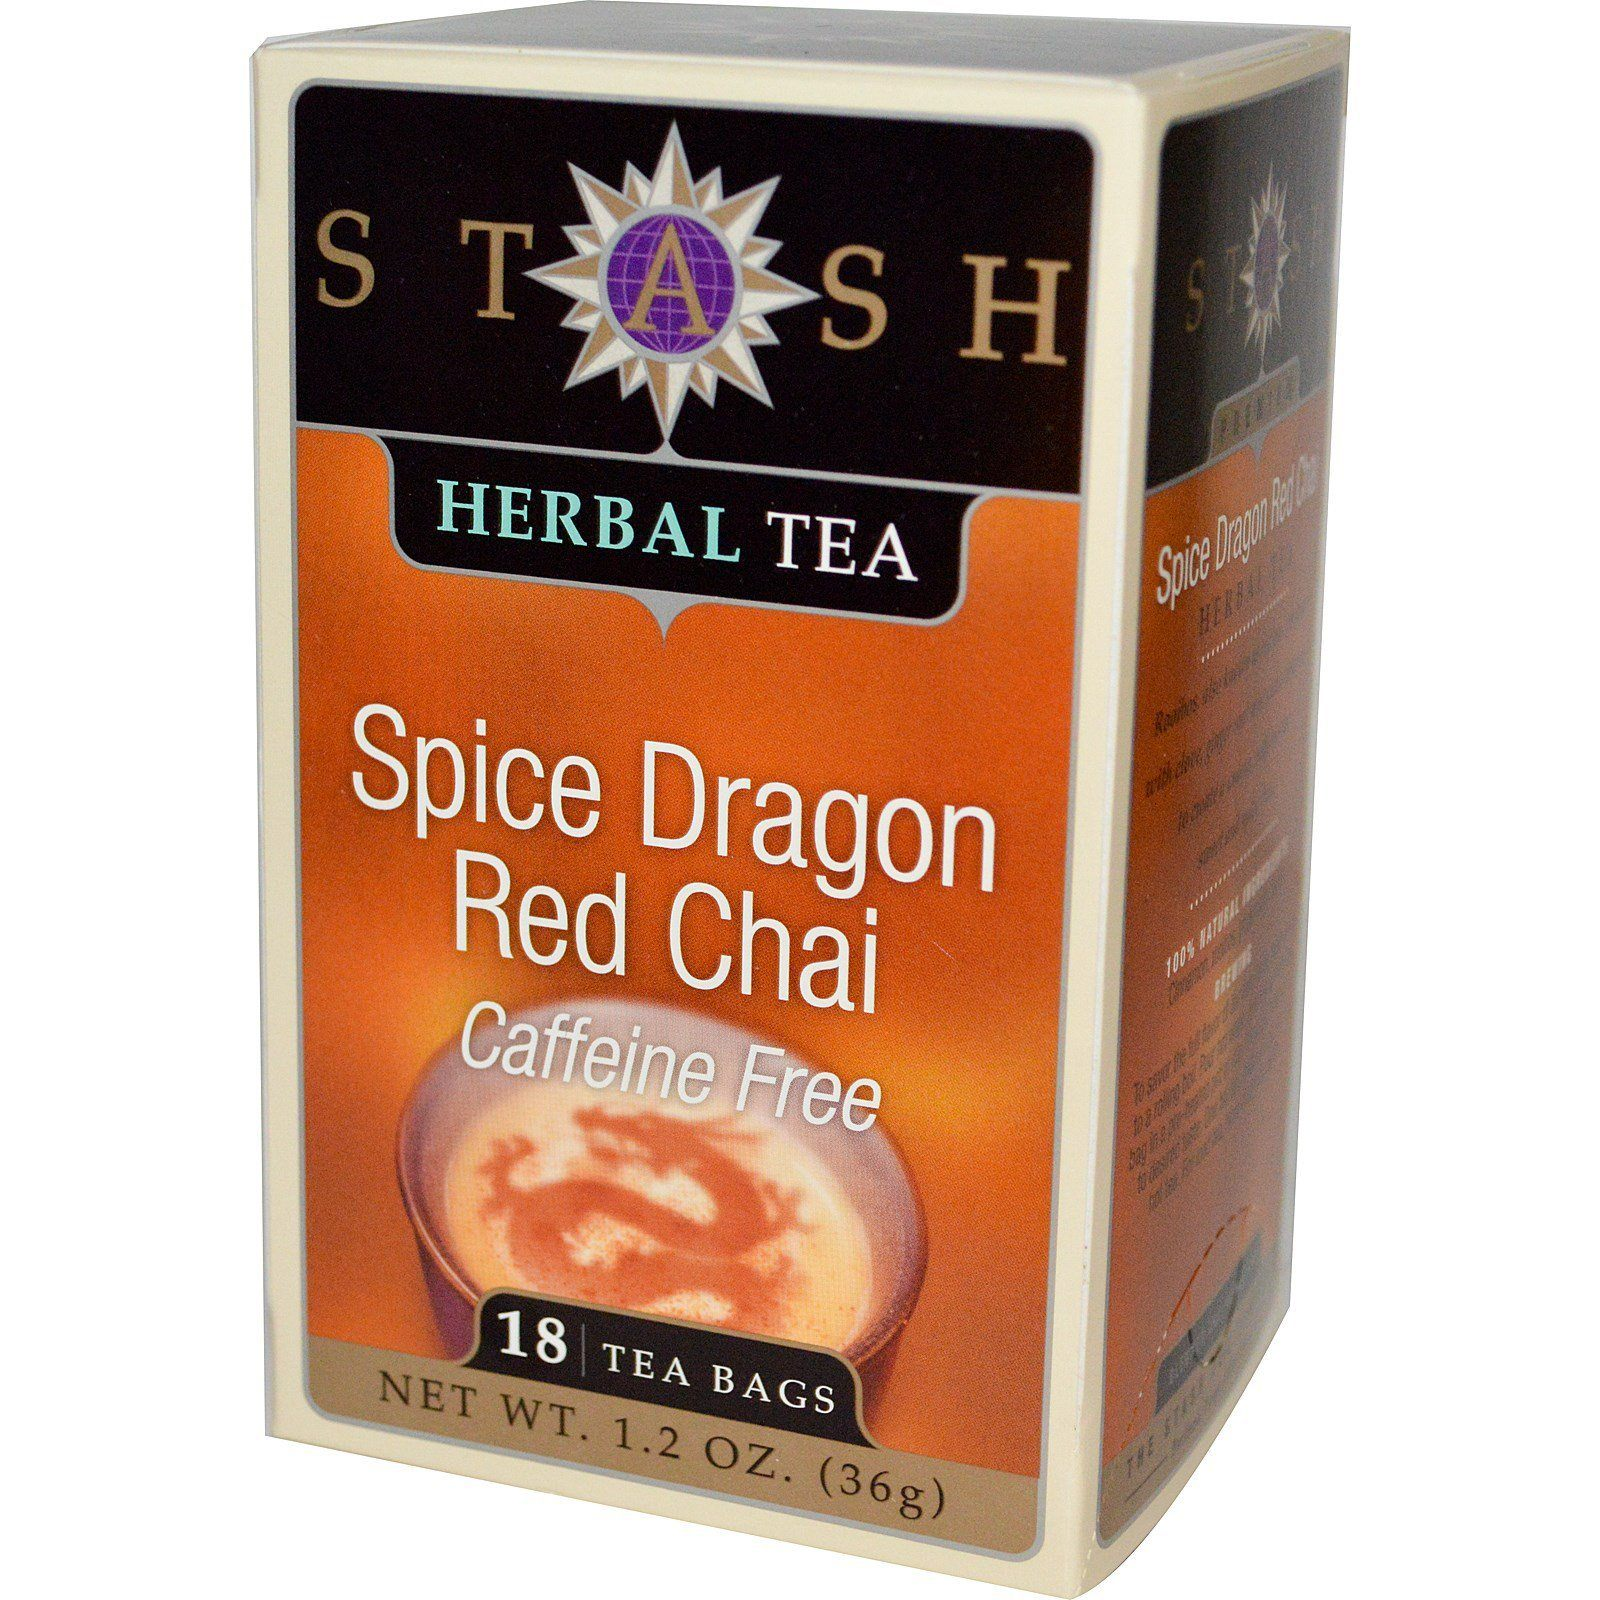 Food & Drink - Stash - Spice Dragon Red Chai Tea, 18 Bags